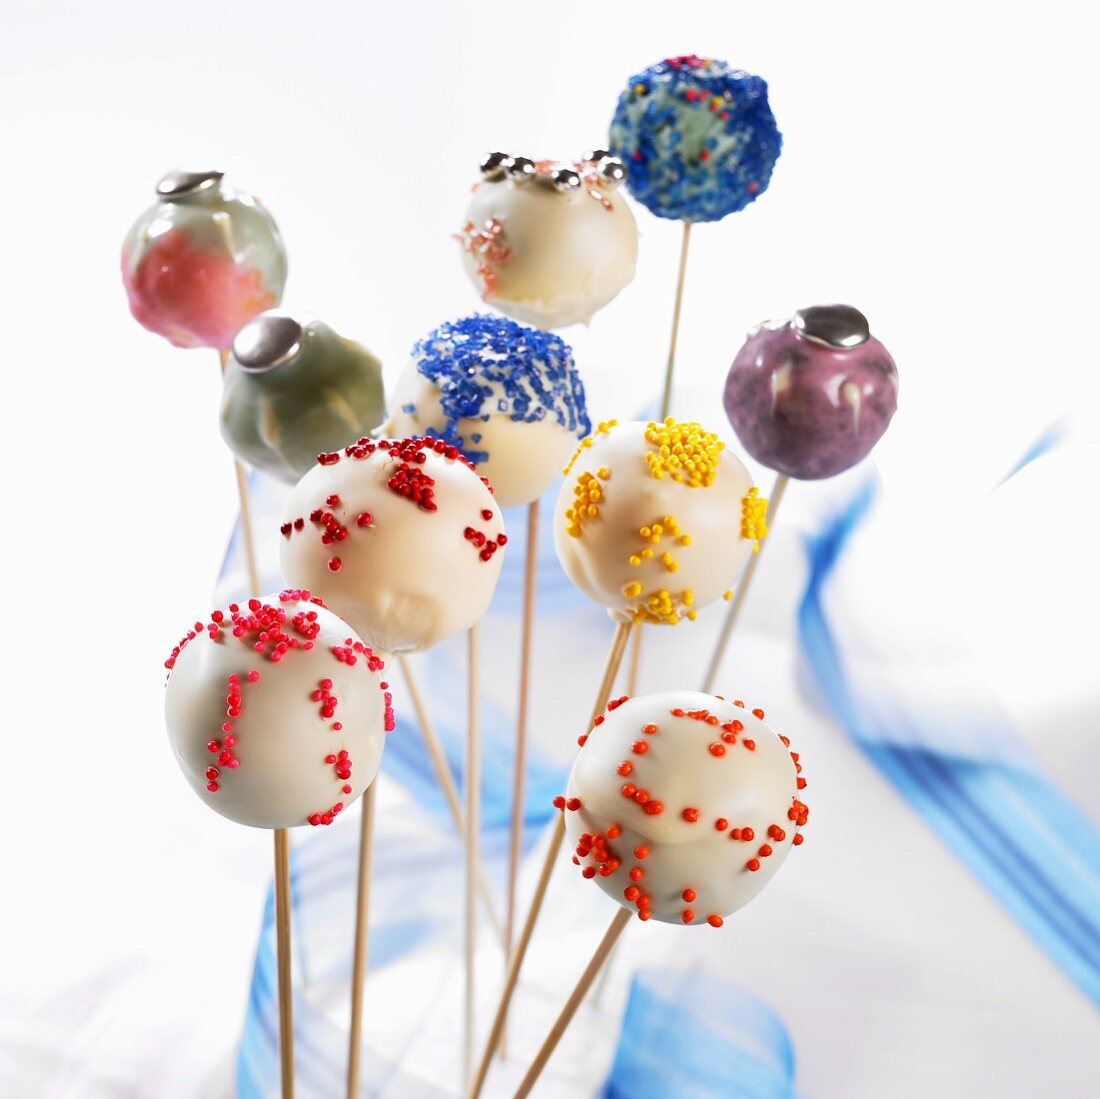 Many different decorate cake pops